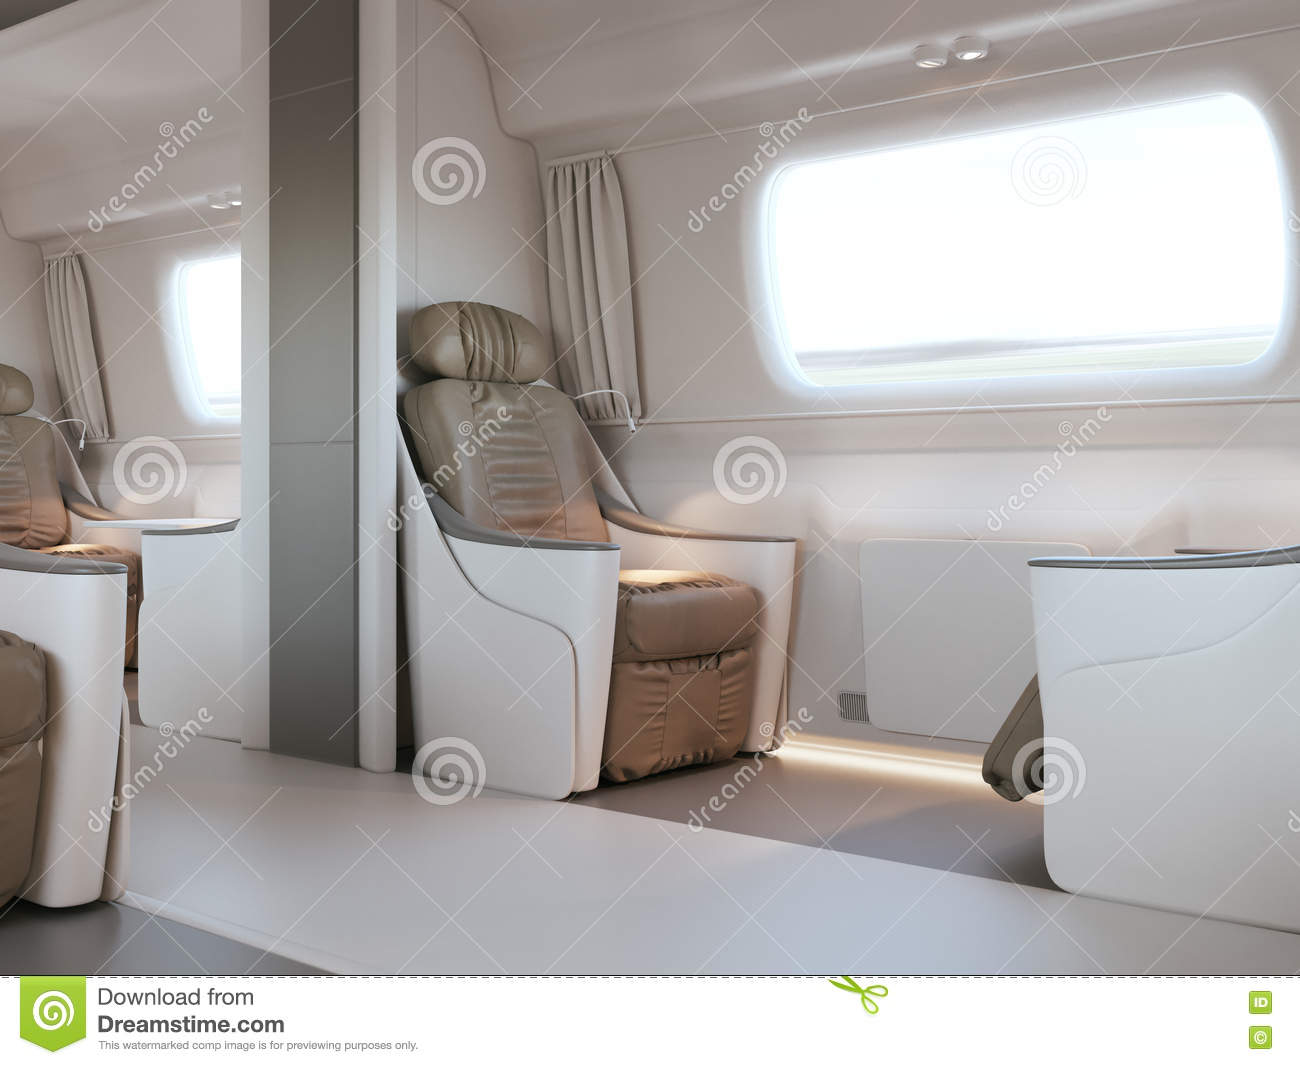 empty luxury passenger train or bus interior with grey seats closeup side view mockup of tv. Black Bedroom Furniture Sets. Home Design Ideas